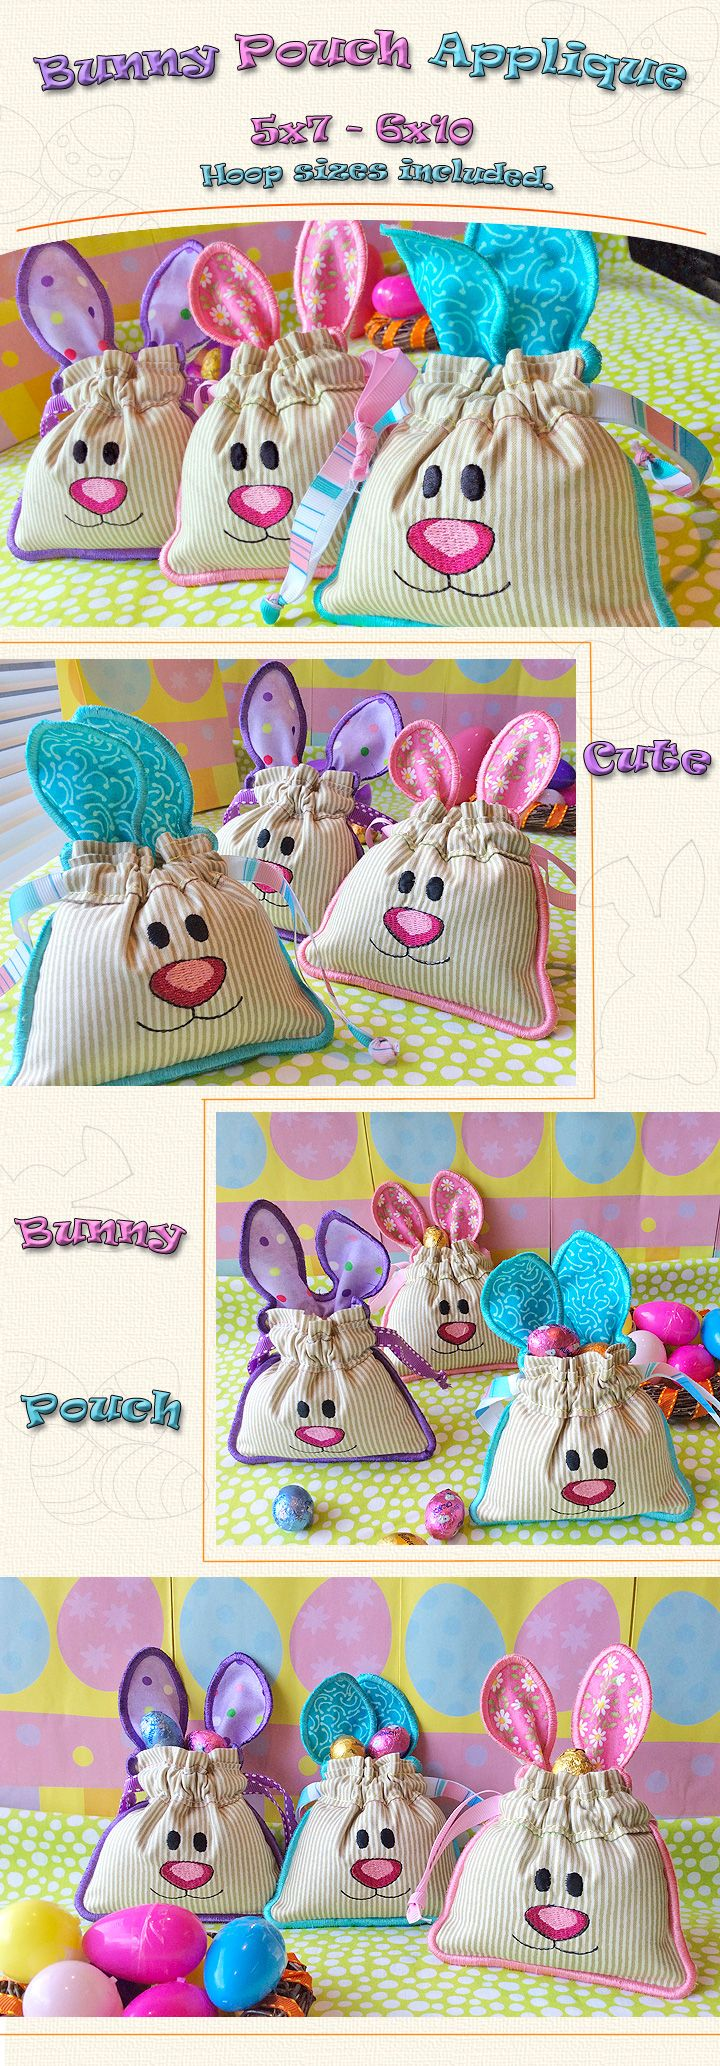 Beautiful Bunny Pouch completely done in the hoop, easy to follow applique instructions included, 5x7 and 6x10 hoop size. Add some fluffy fabric to make those bunnies even cuter. Enjoy....Cords Pack and Pastel Fabric Bundle Available here!